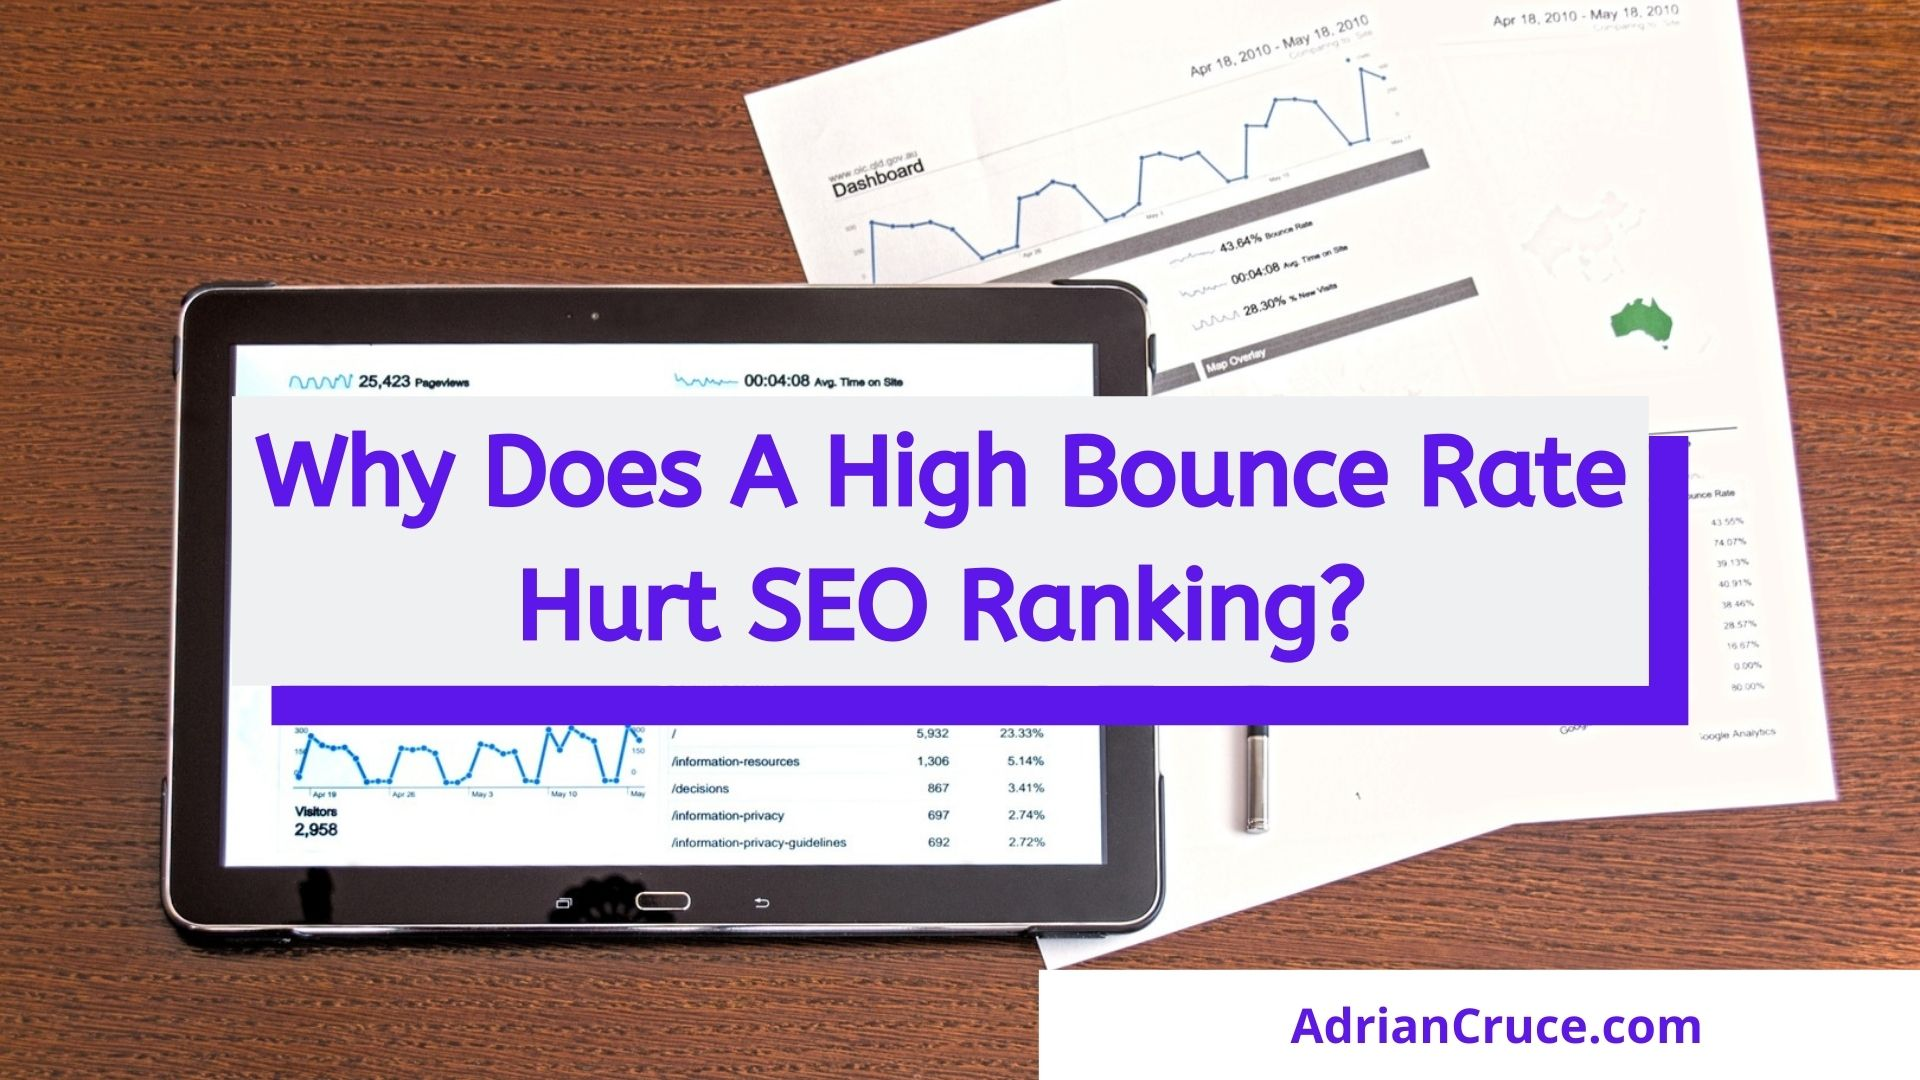 Why Does A High Bounce Rate Hurt SEO Ranking